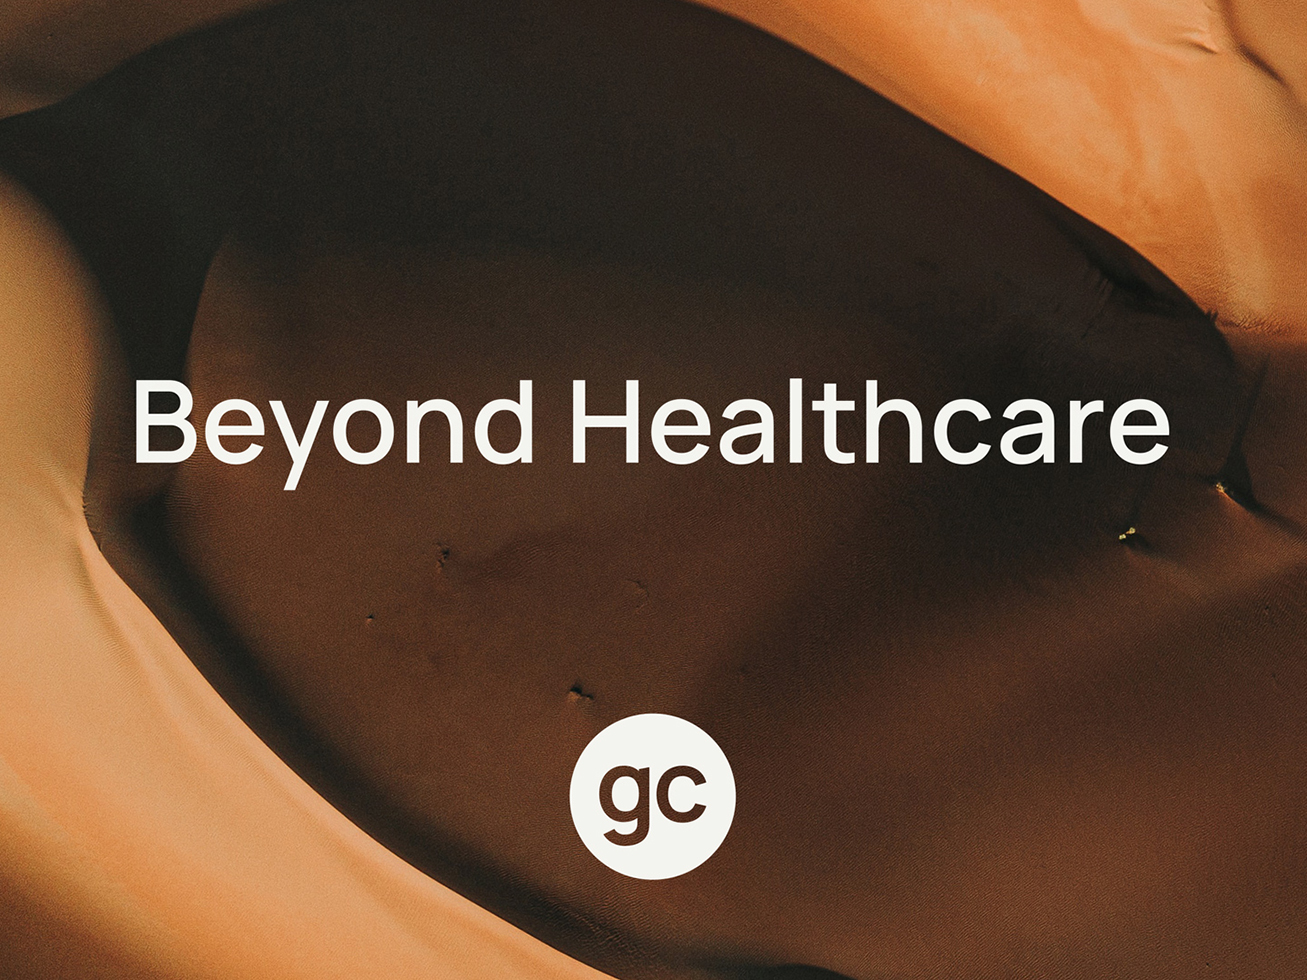 GULFCARE_IMAGES_JWI_BEYOND_HEALTHCARE